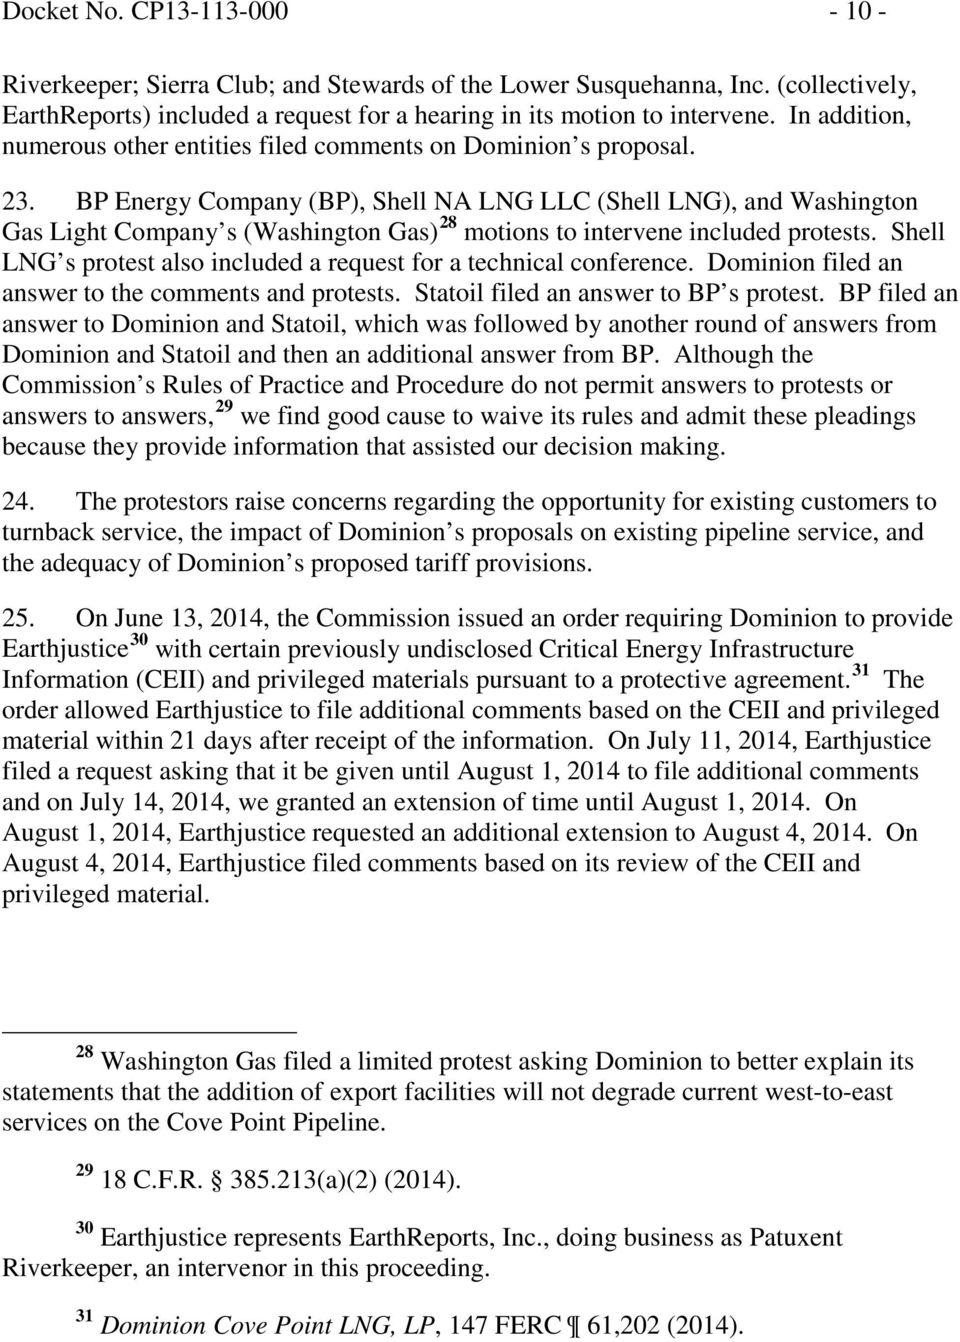 BP Energy Company (BP), Shell NA LNG LLC (Shell LNG), and Washington Gas Light Company s (Washington Gas) 28 motions to intervene included protests.